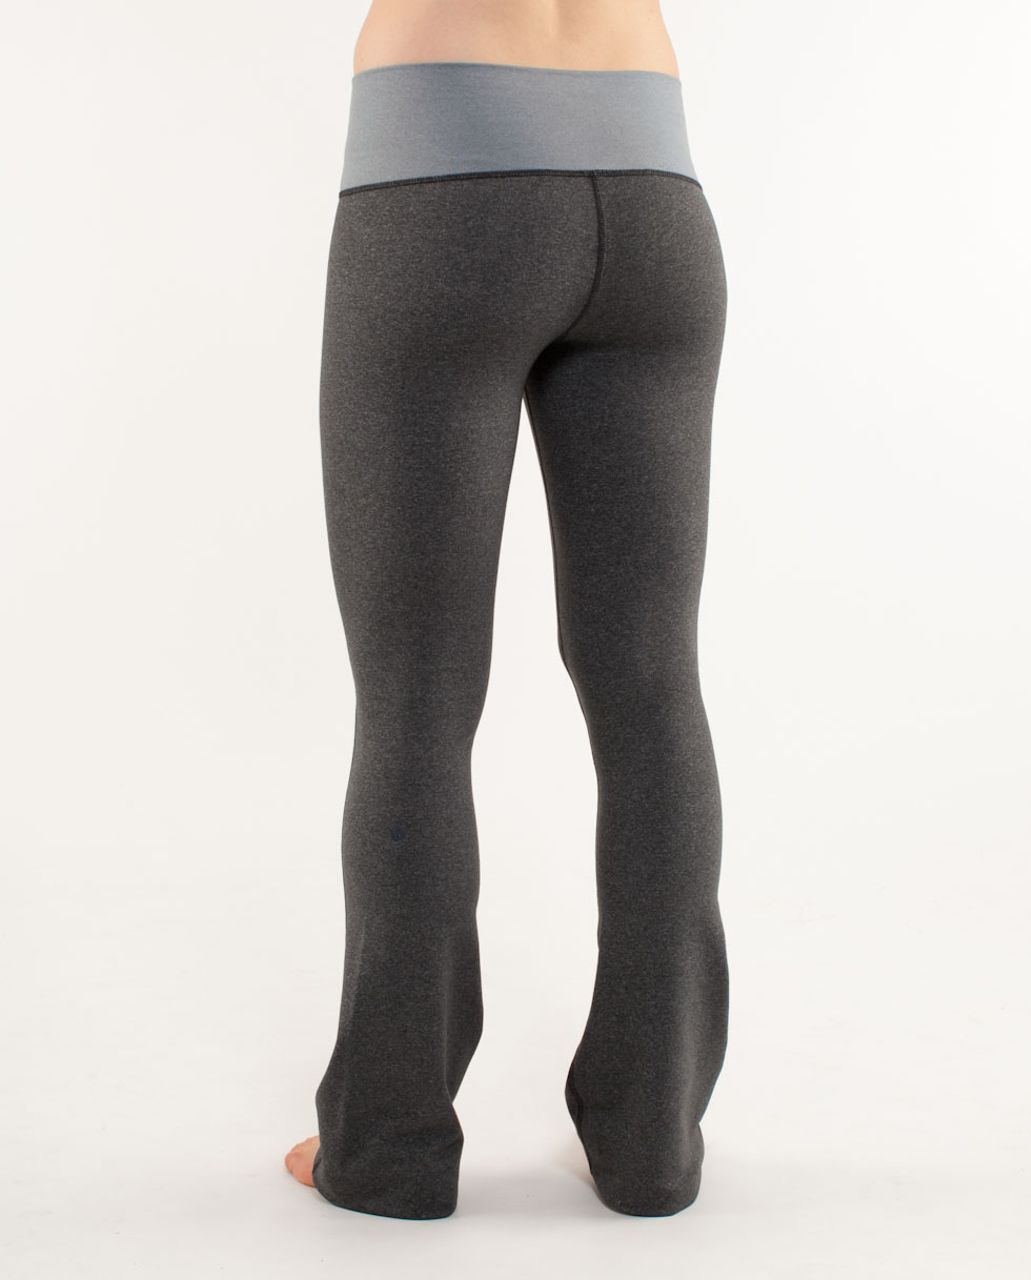 Lululemon Recognition Pant - Heathered Deep Coal /  Heathered Blurred Grey